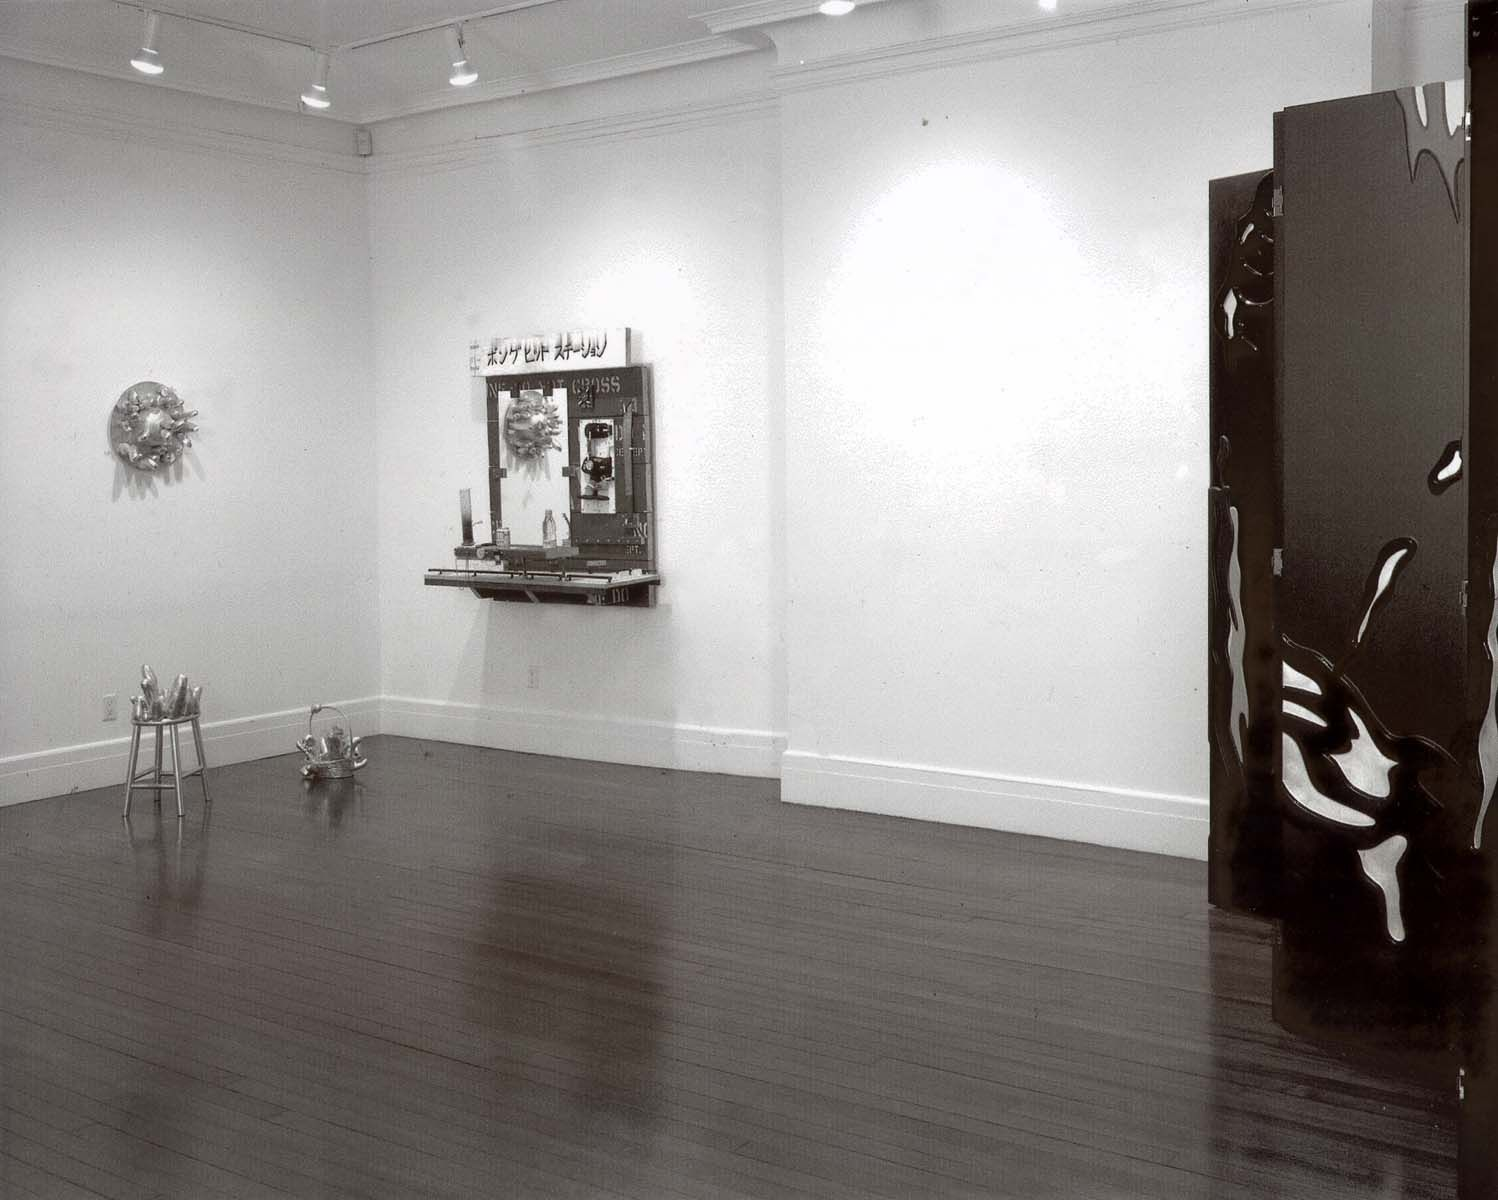 Installation view, Homestyle, 18 EAST 77